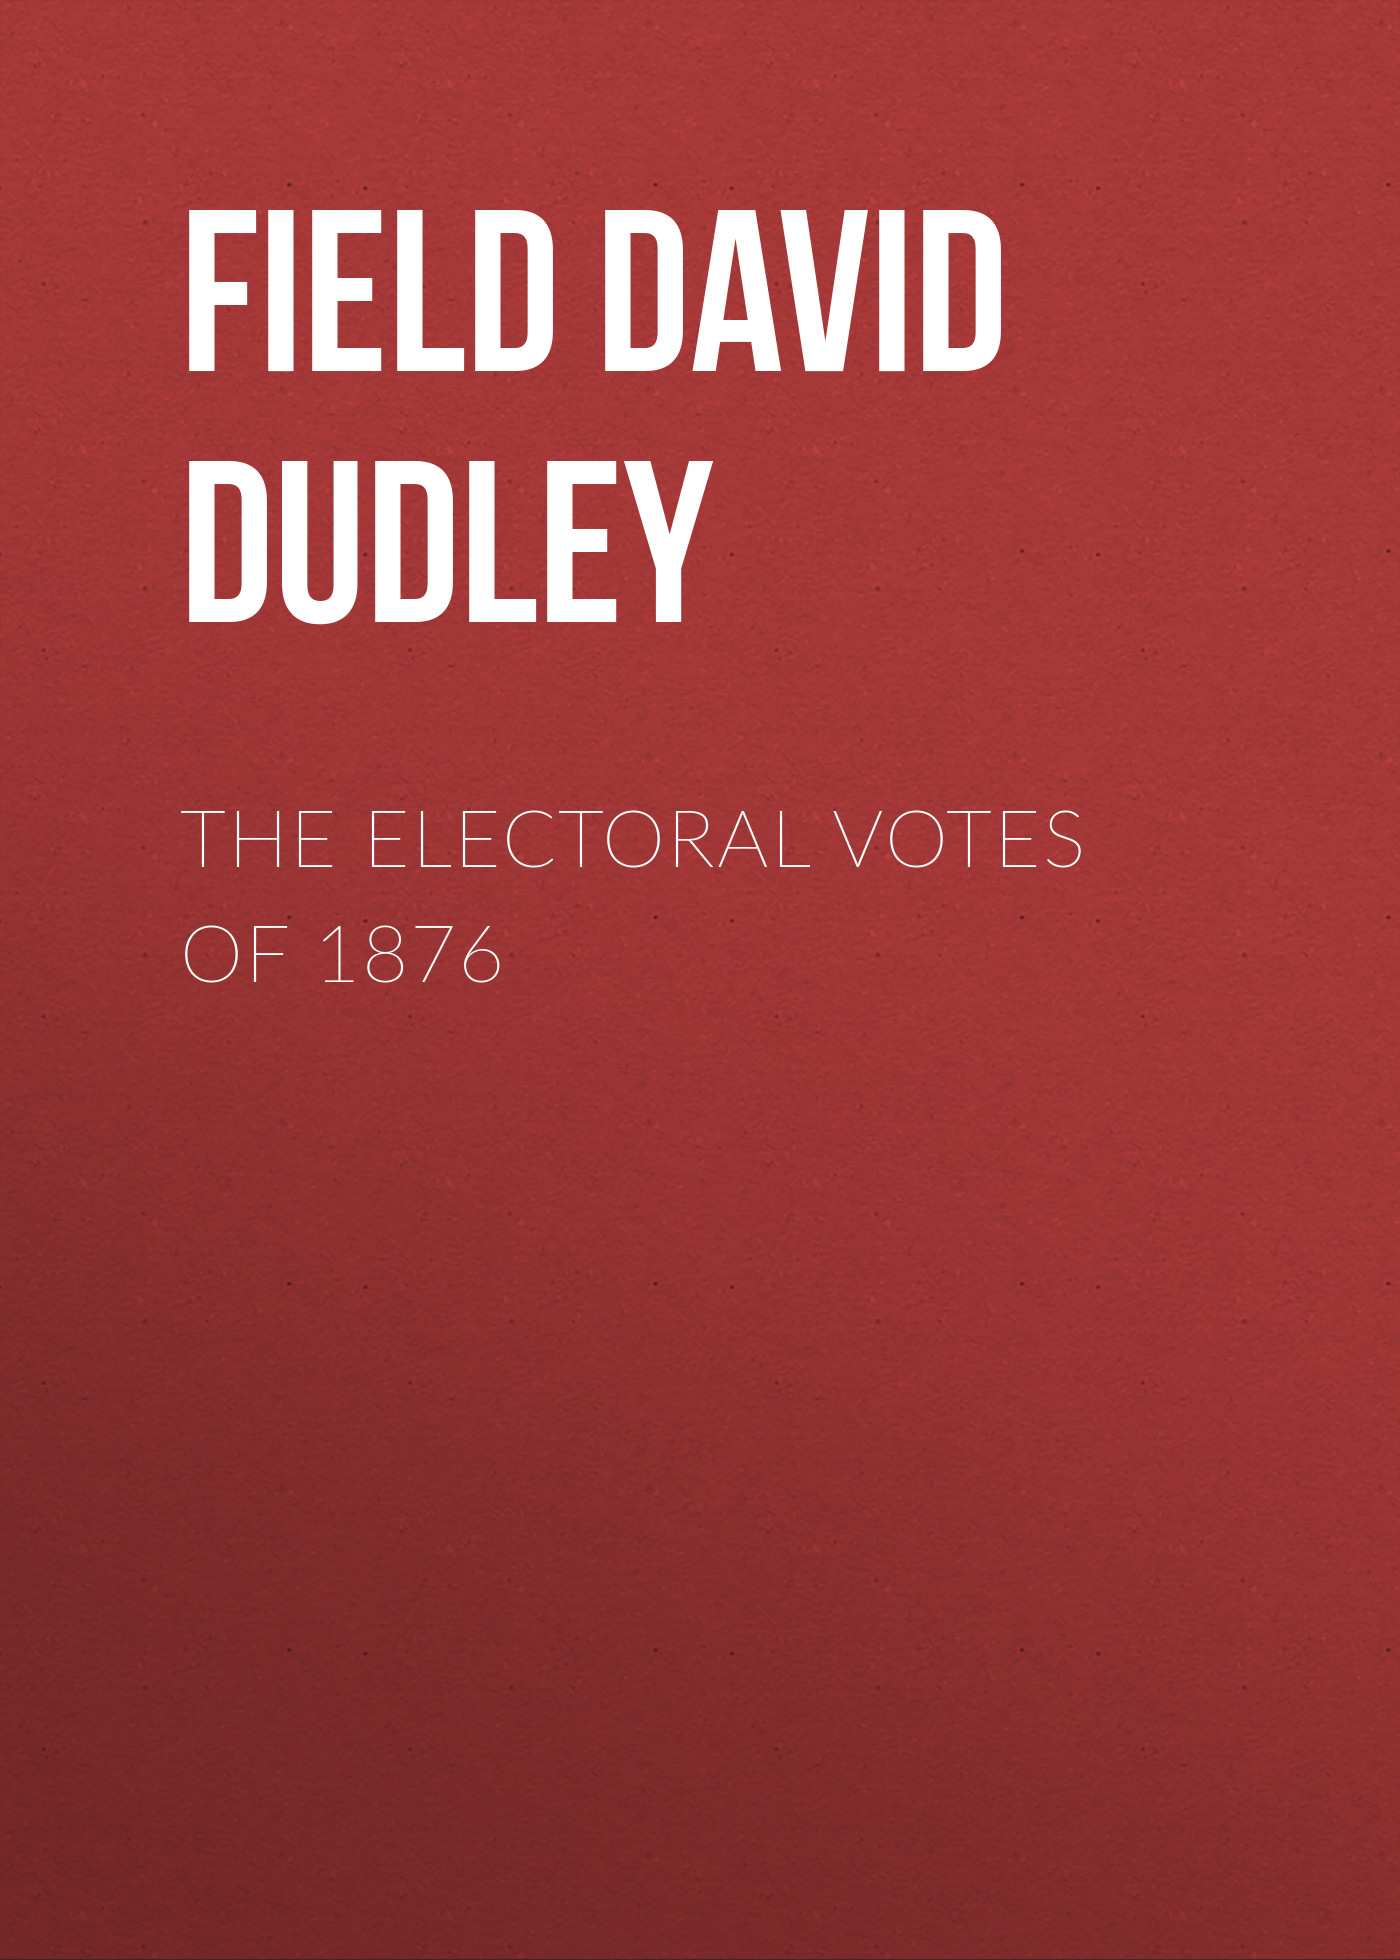 Field David Dudley The Electoral Votes of 1876 david jackman the compliance revolution